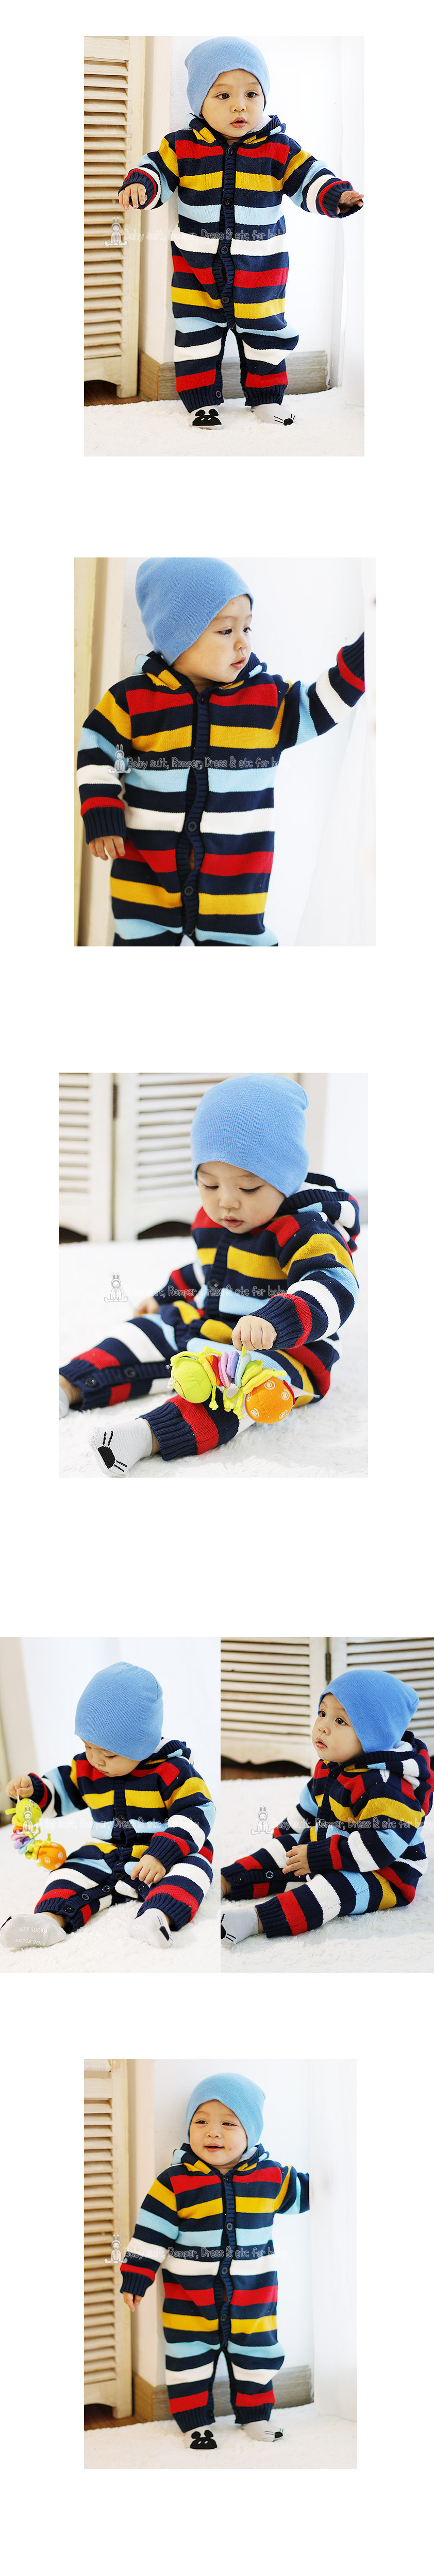 [ BABYMAX ] 7064 Rainbow Knit Hooded Rompers